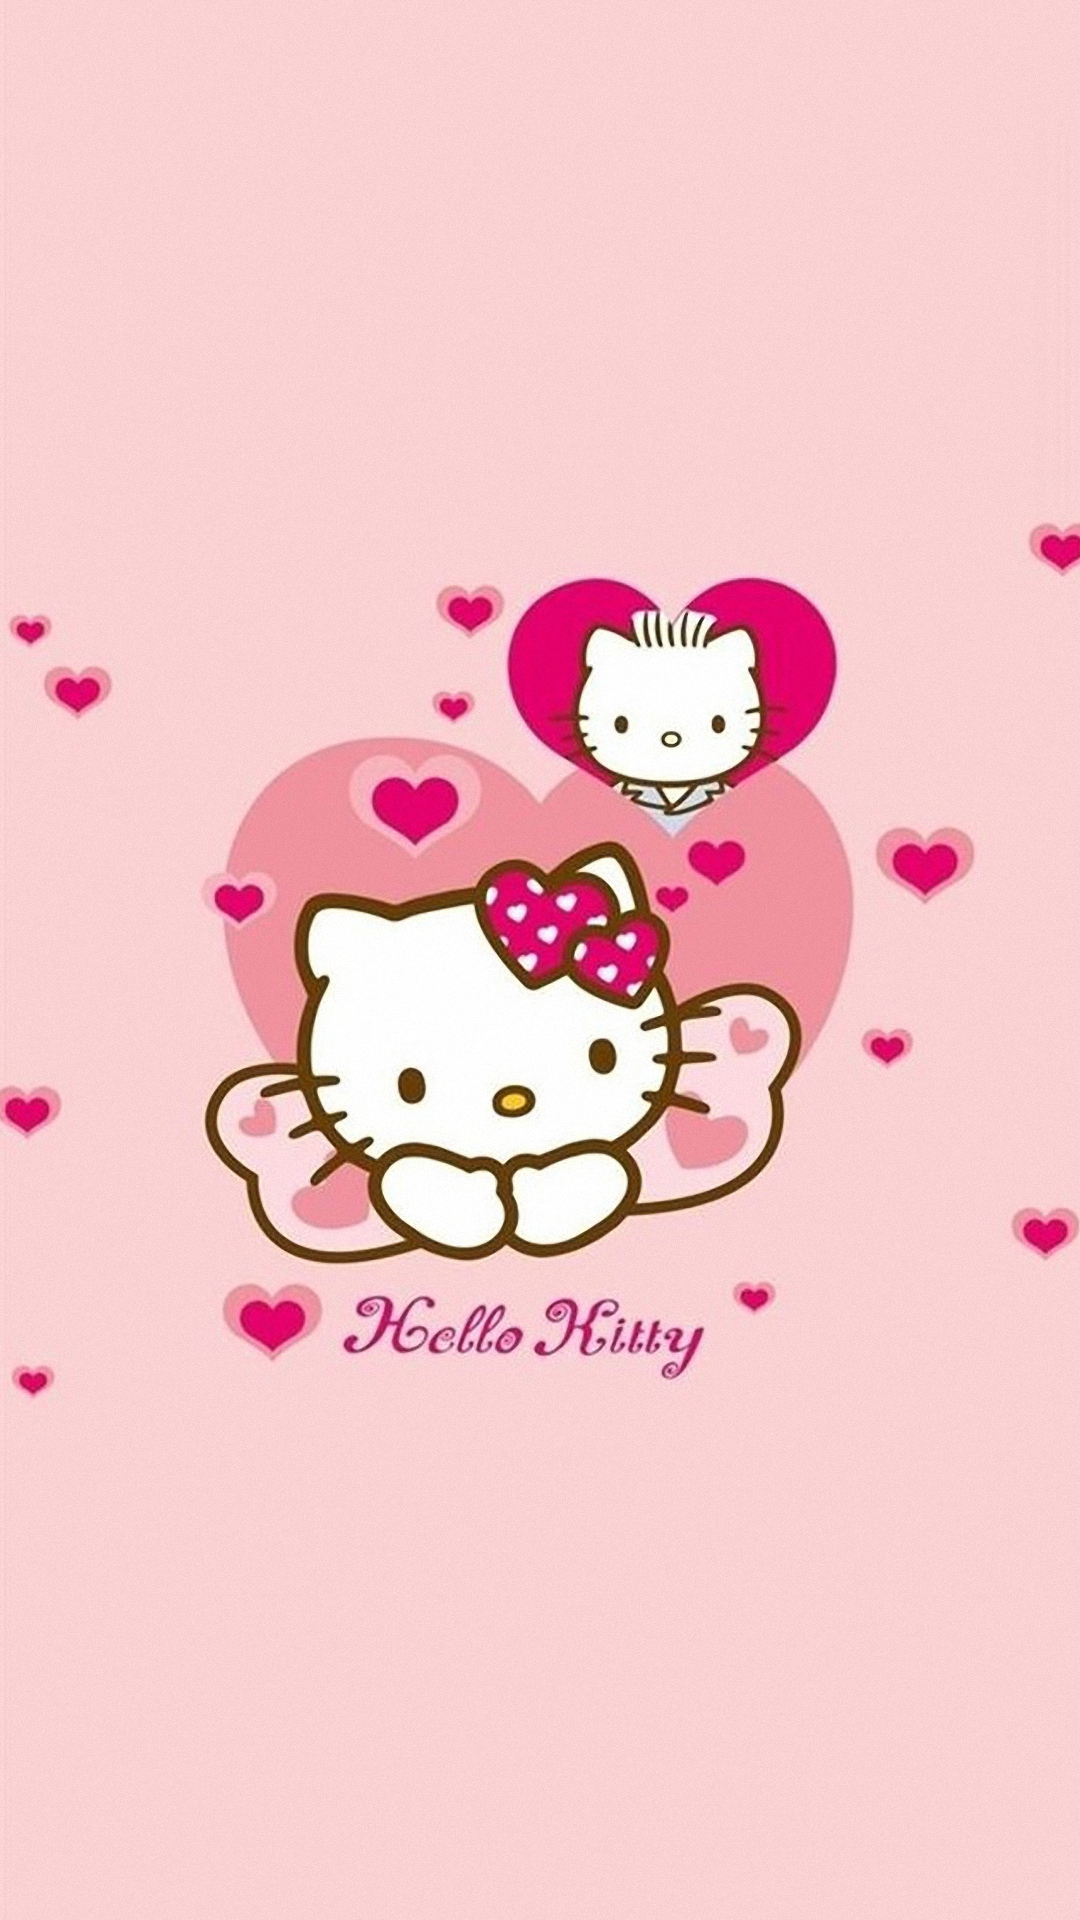 Cute Hello Kitty galaxy s4 s5 Wallpapers HD 1080x1920 1080x1920